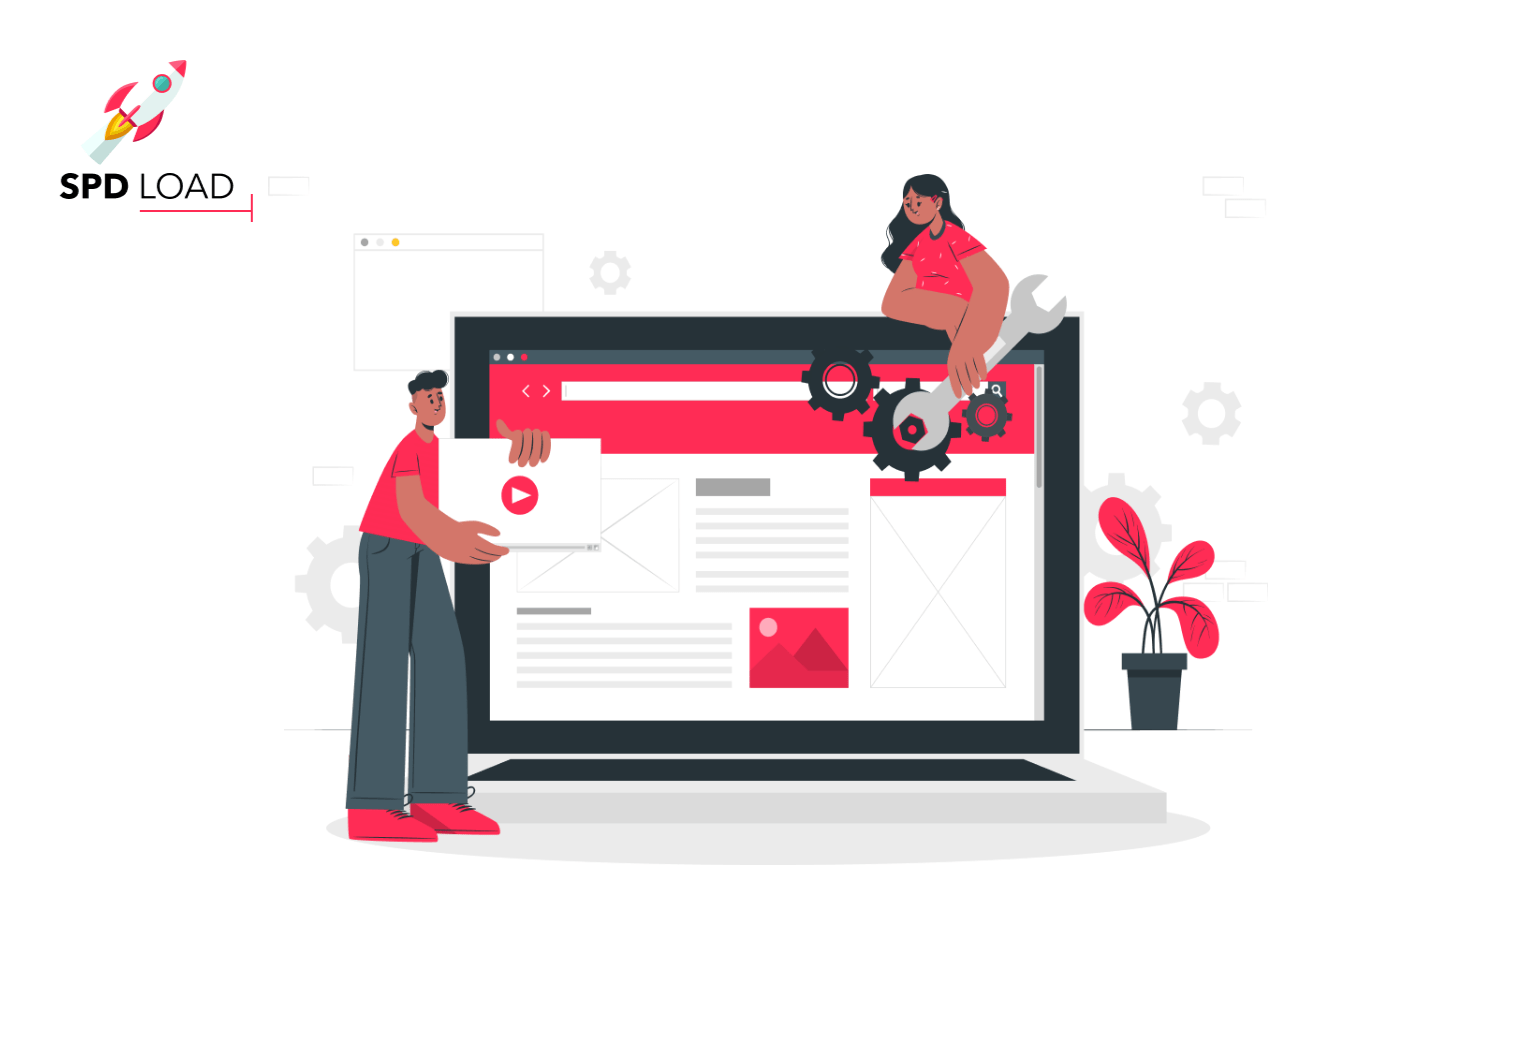 SpdLoad prepared an in-depth guide on how to outsource website design. Enjoy reading and share your feedback :)